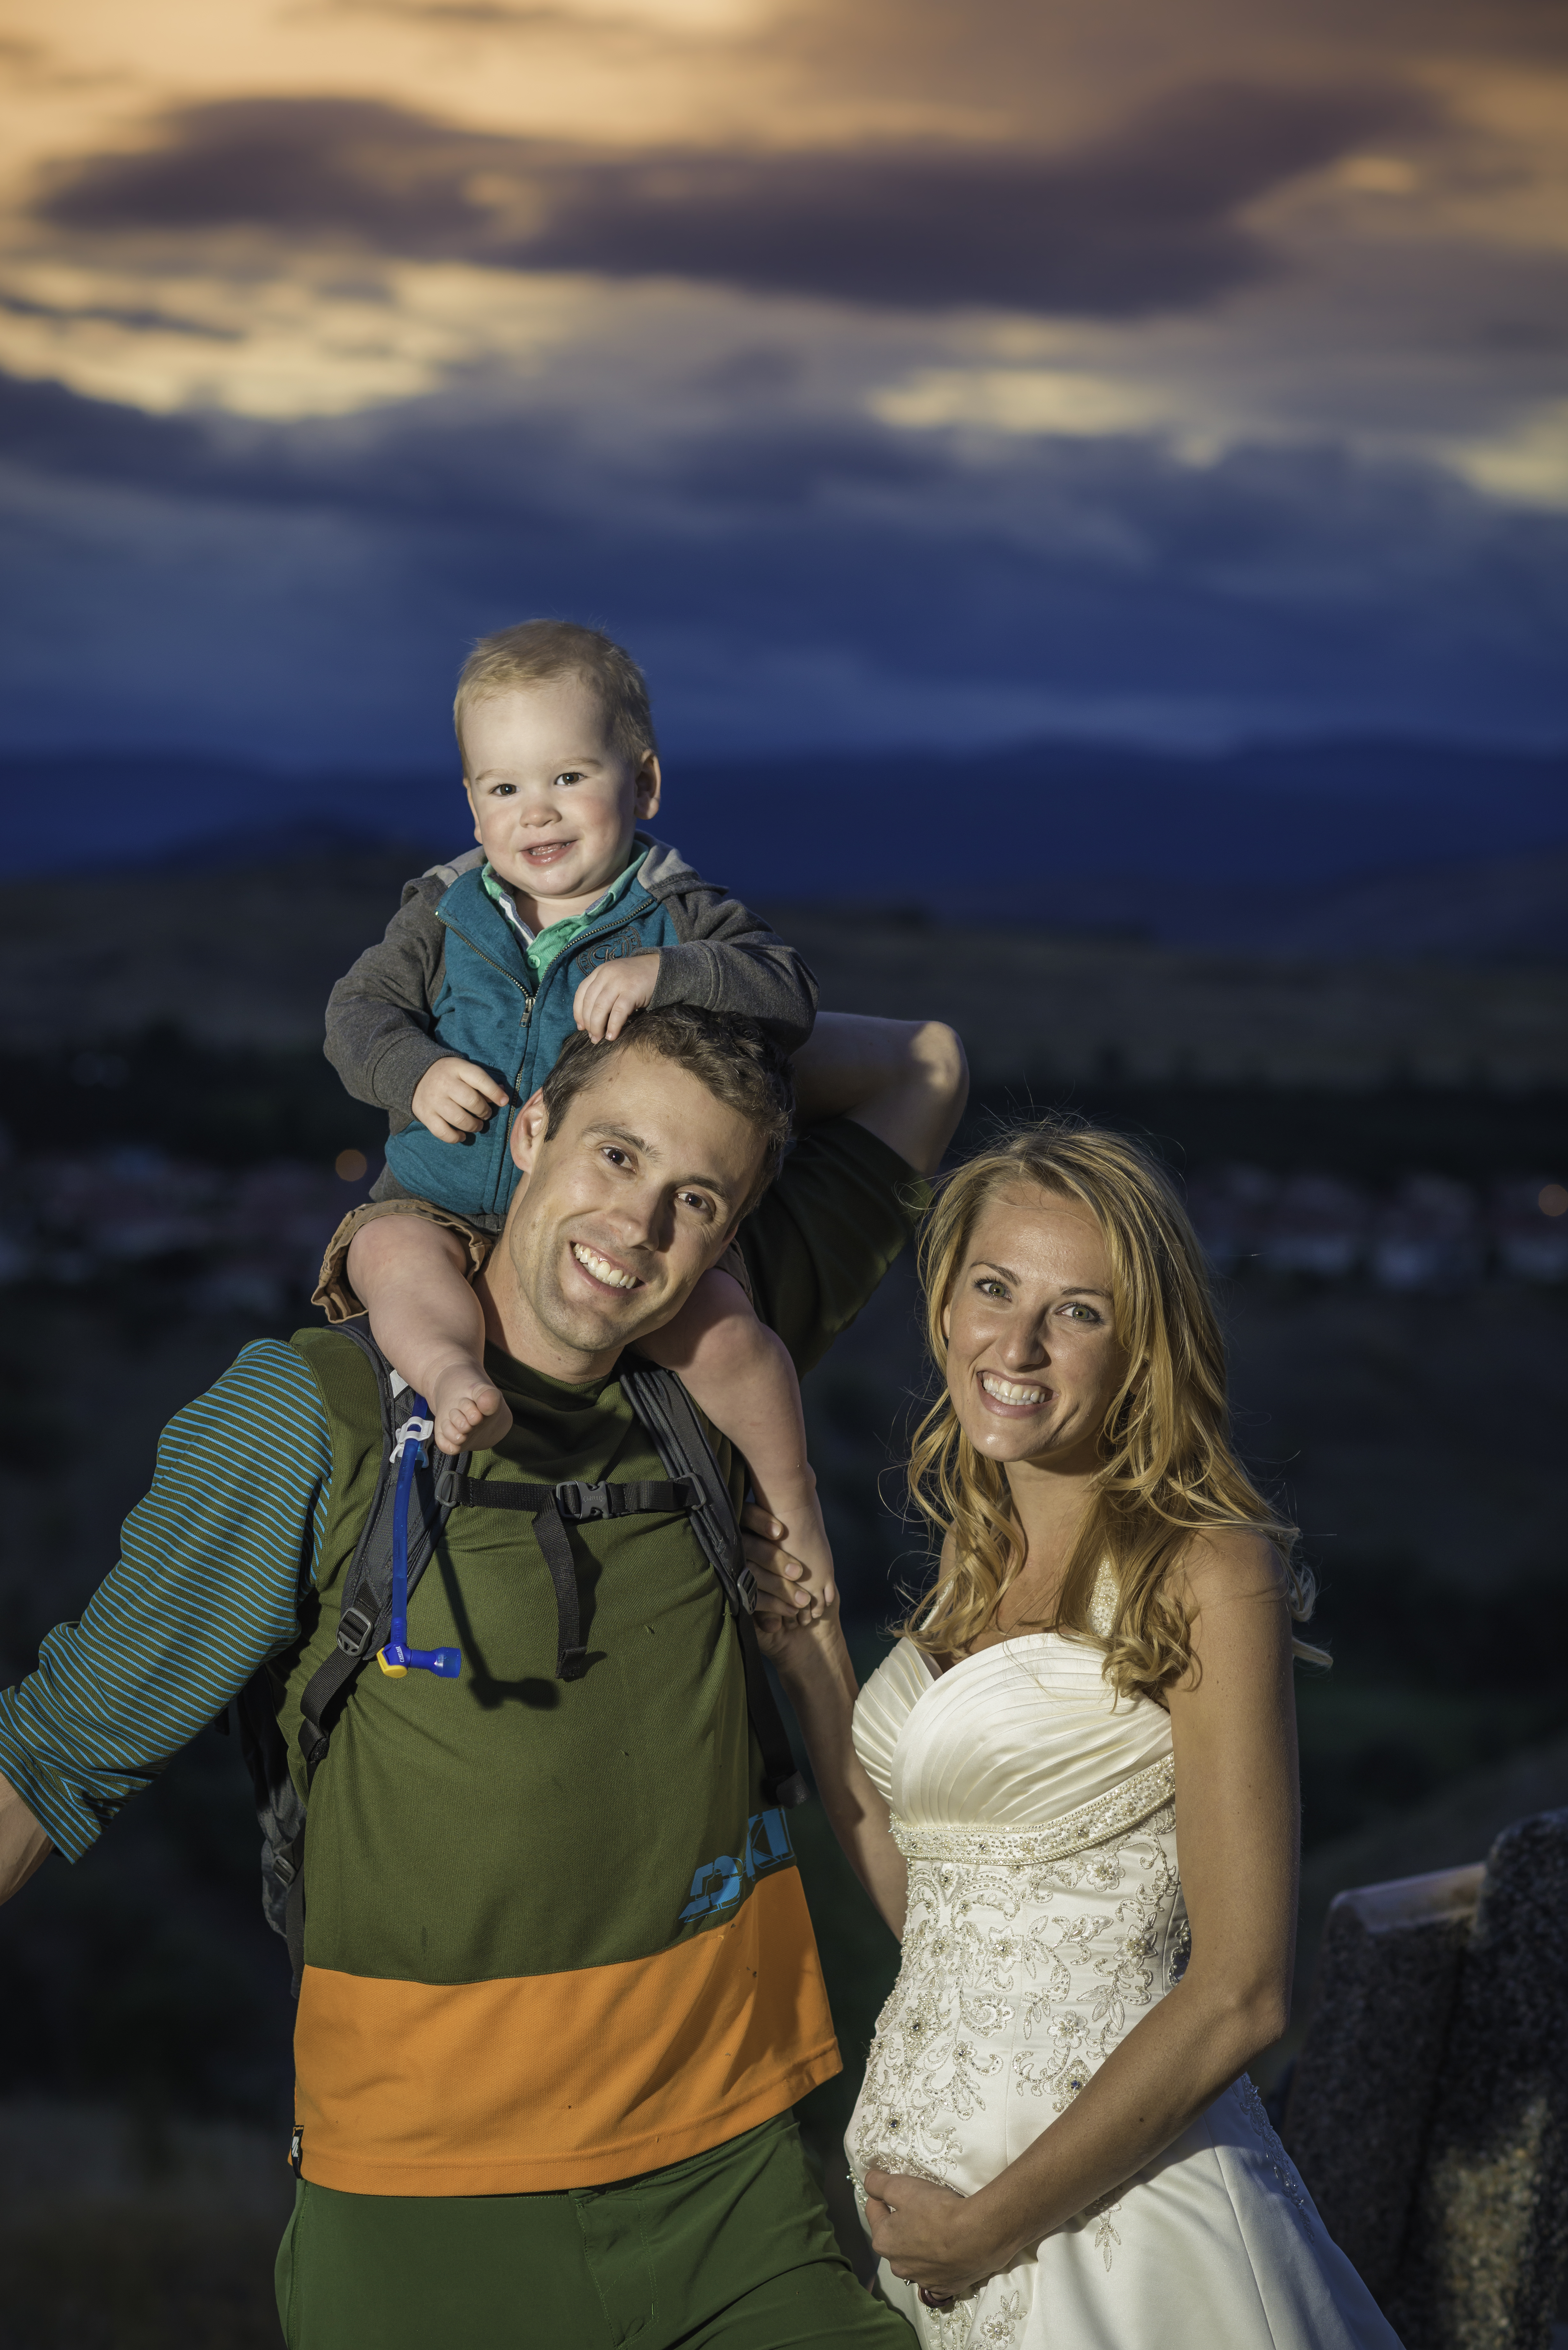 Mountain Bike, Bride, and Kid